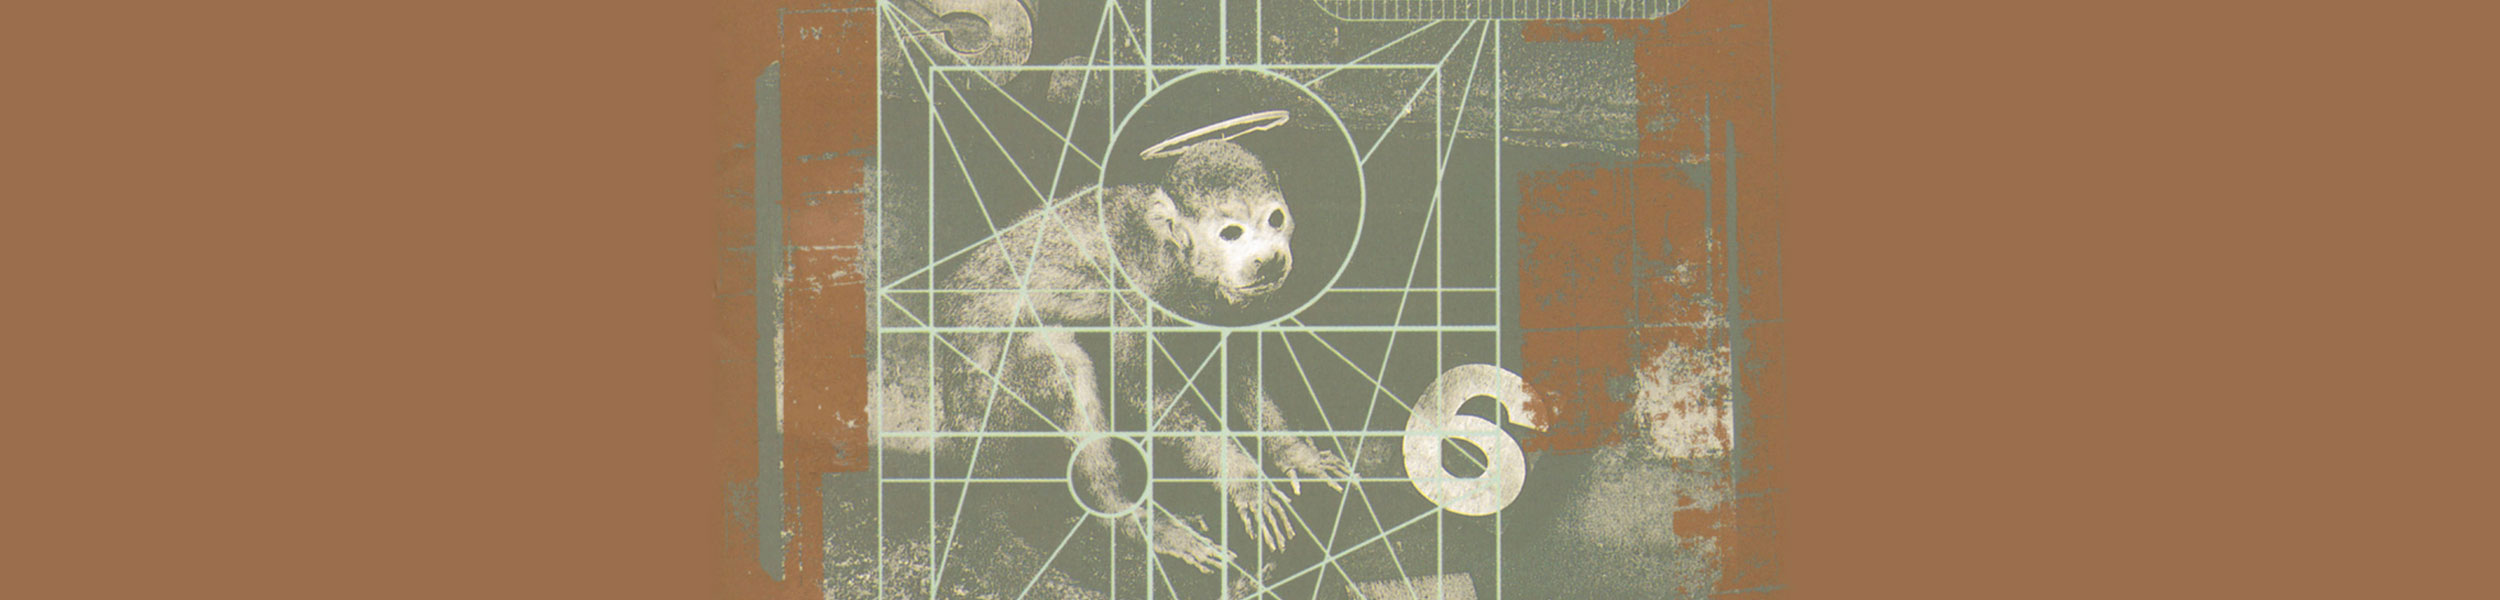 Pixies - 'Doolittle 25' Announced, Pre-Order Now